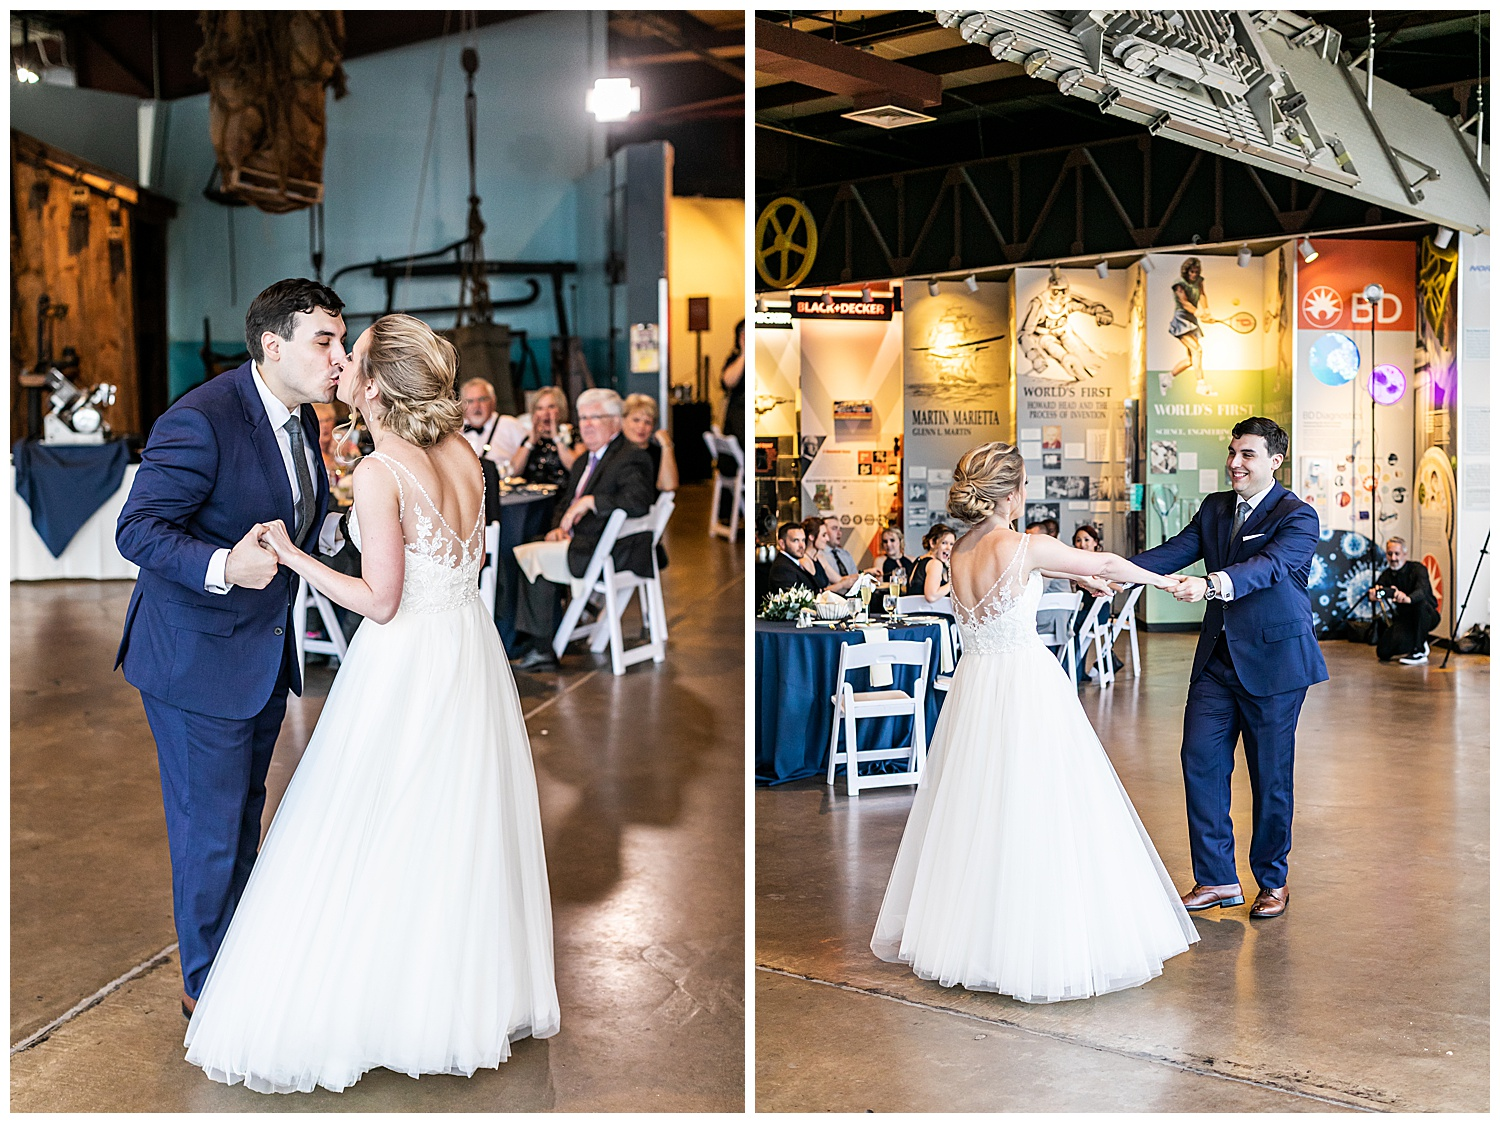 Jenn James Baltimore Museum of Industry Wedding Living Radiant Photography photos_0120.jpg